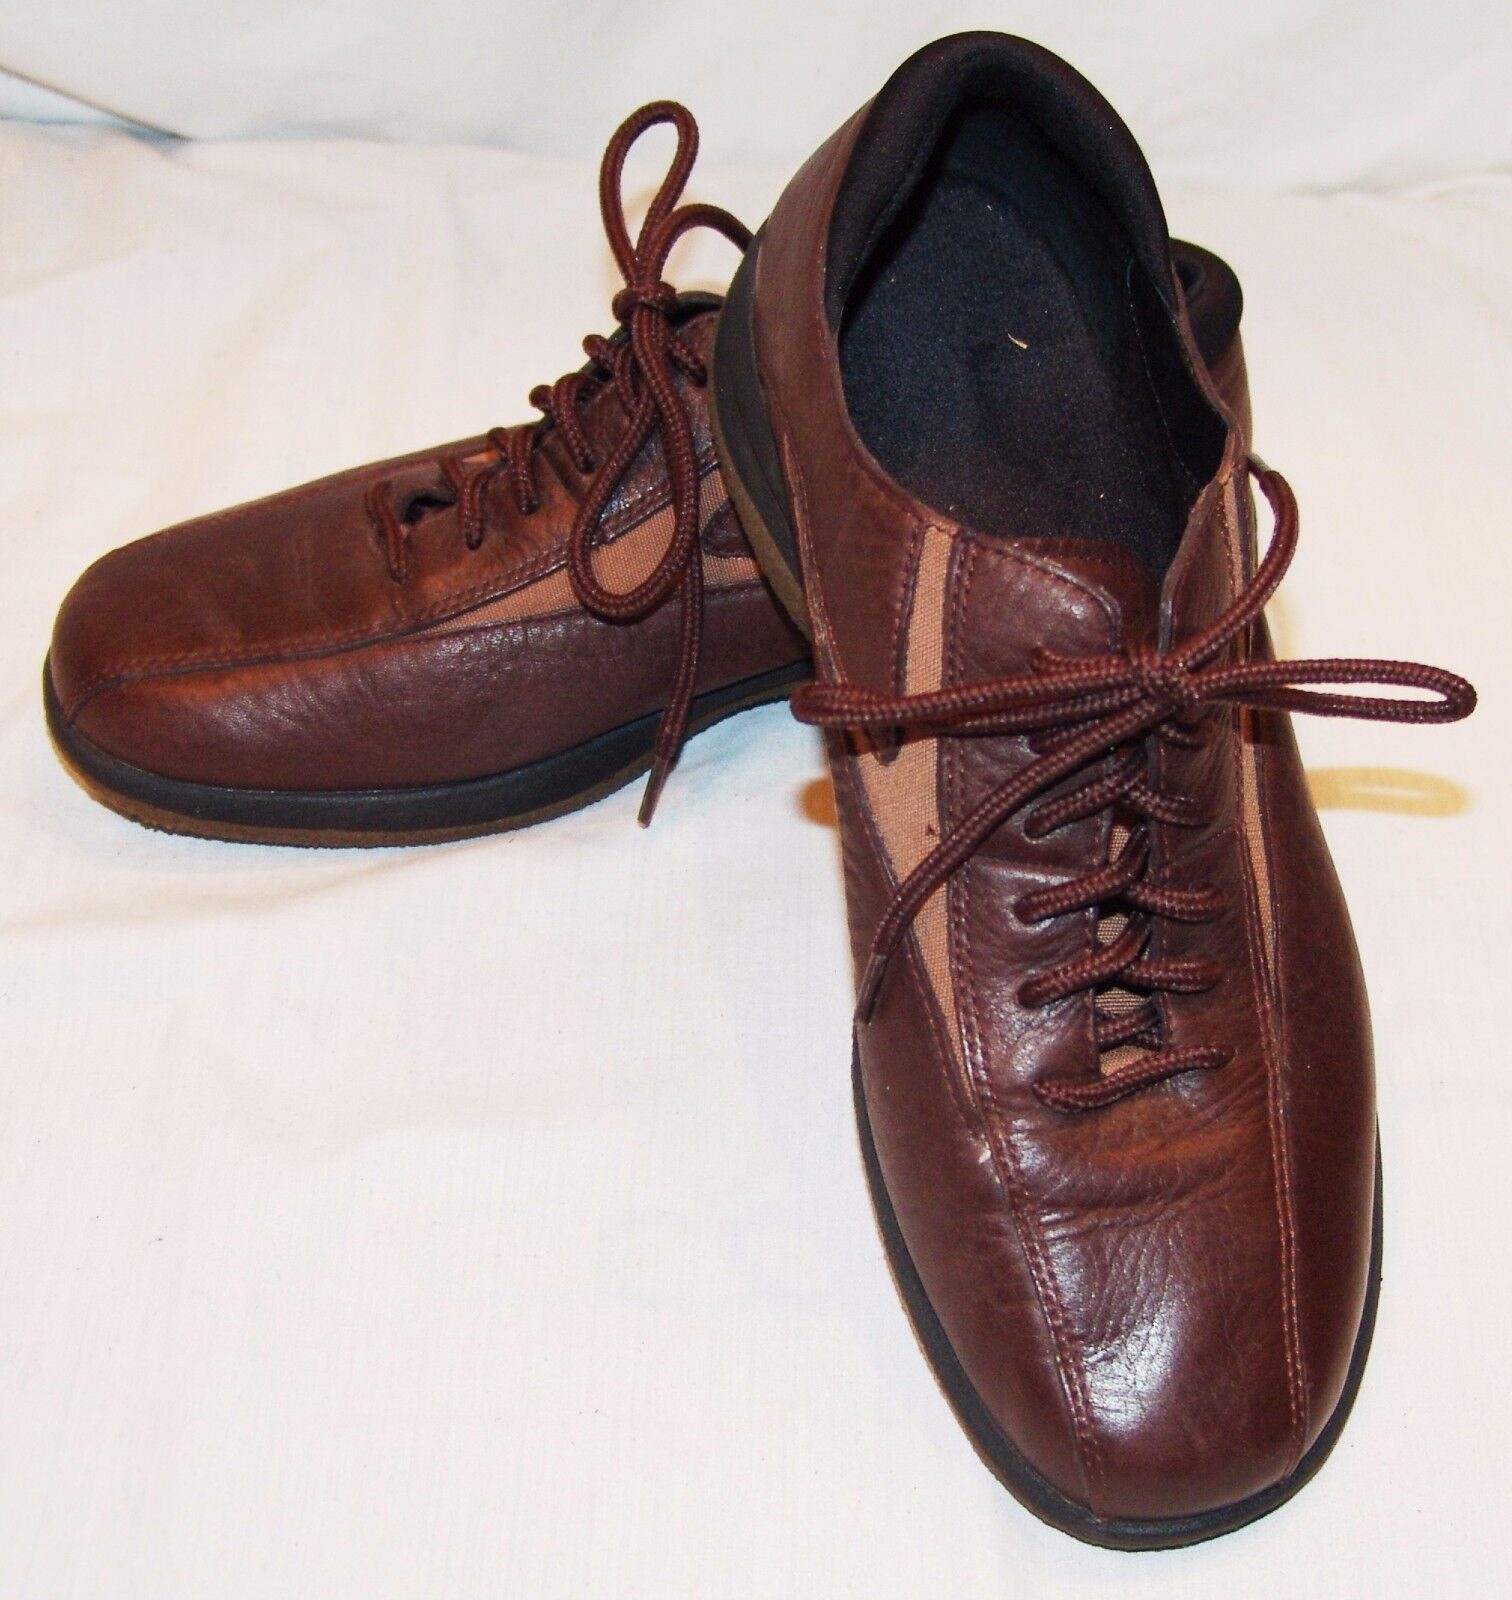 Eastland Lace Up shoes Brown 7 1 2 M Mens Tie Lace Up Casual Leather 7.5